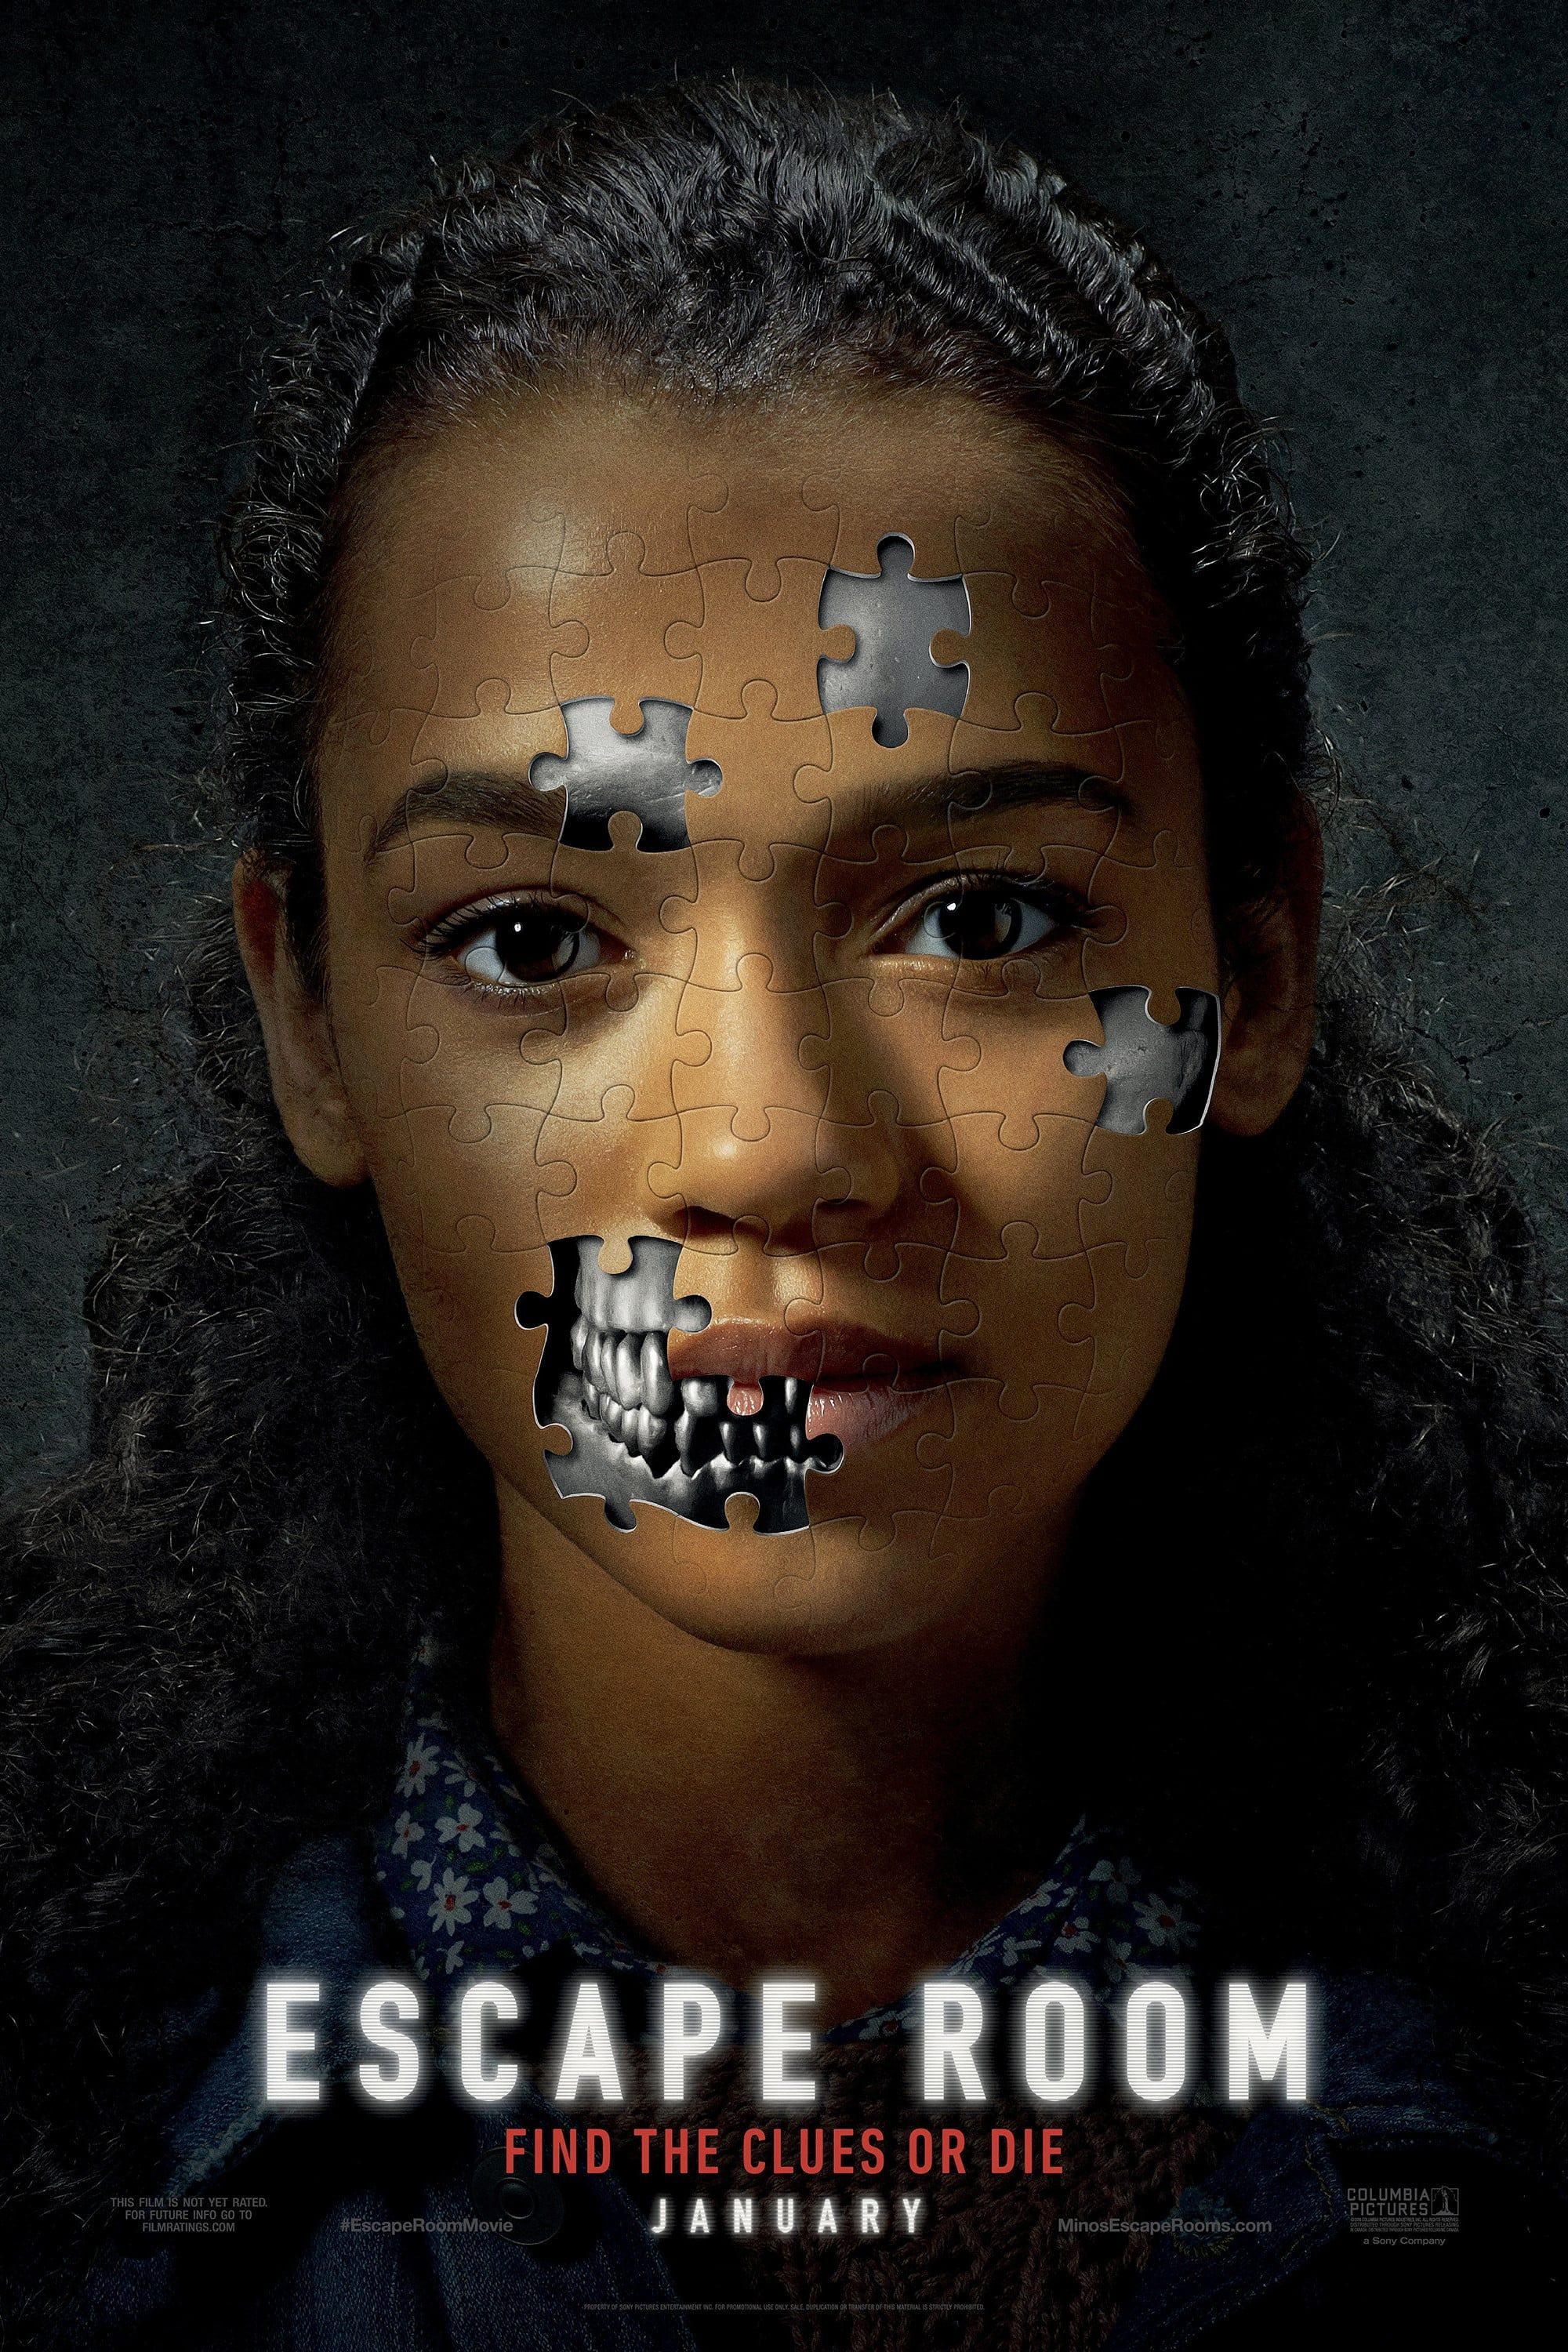 Escape Room FULL MOVIE Streaming Online in HD-720p